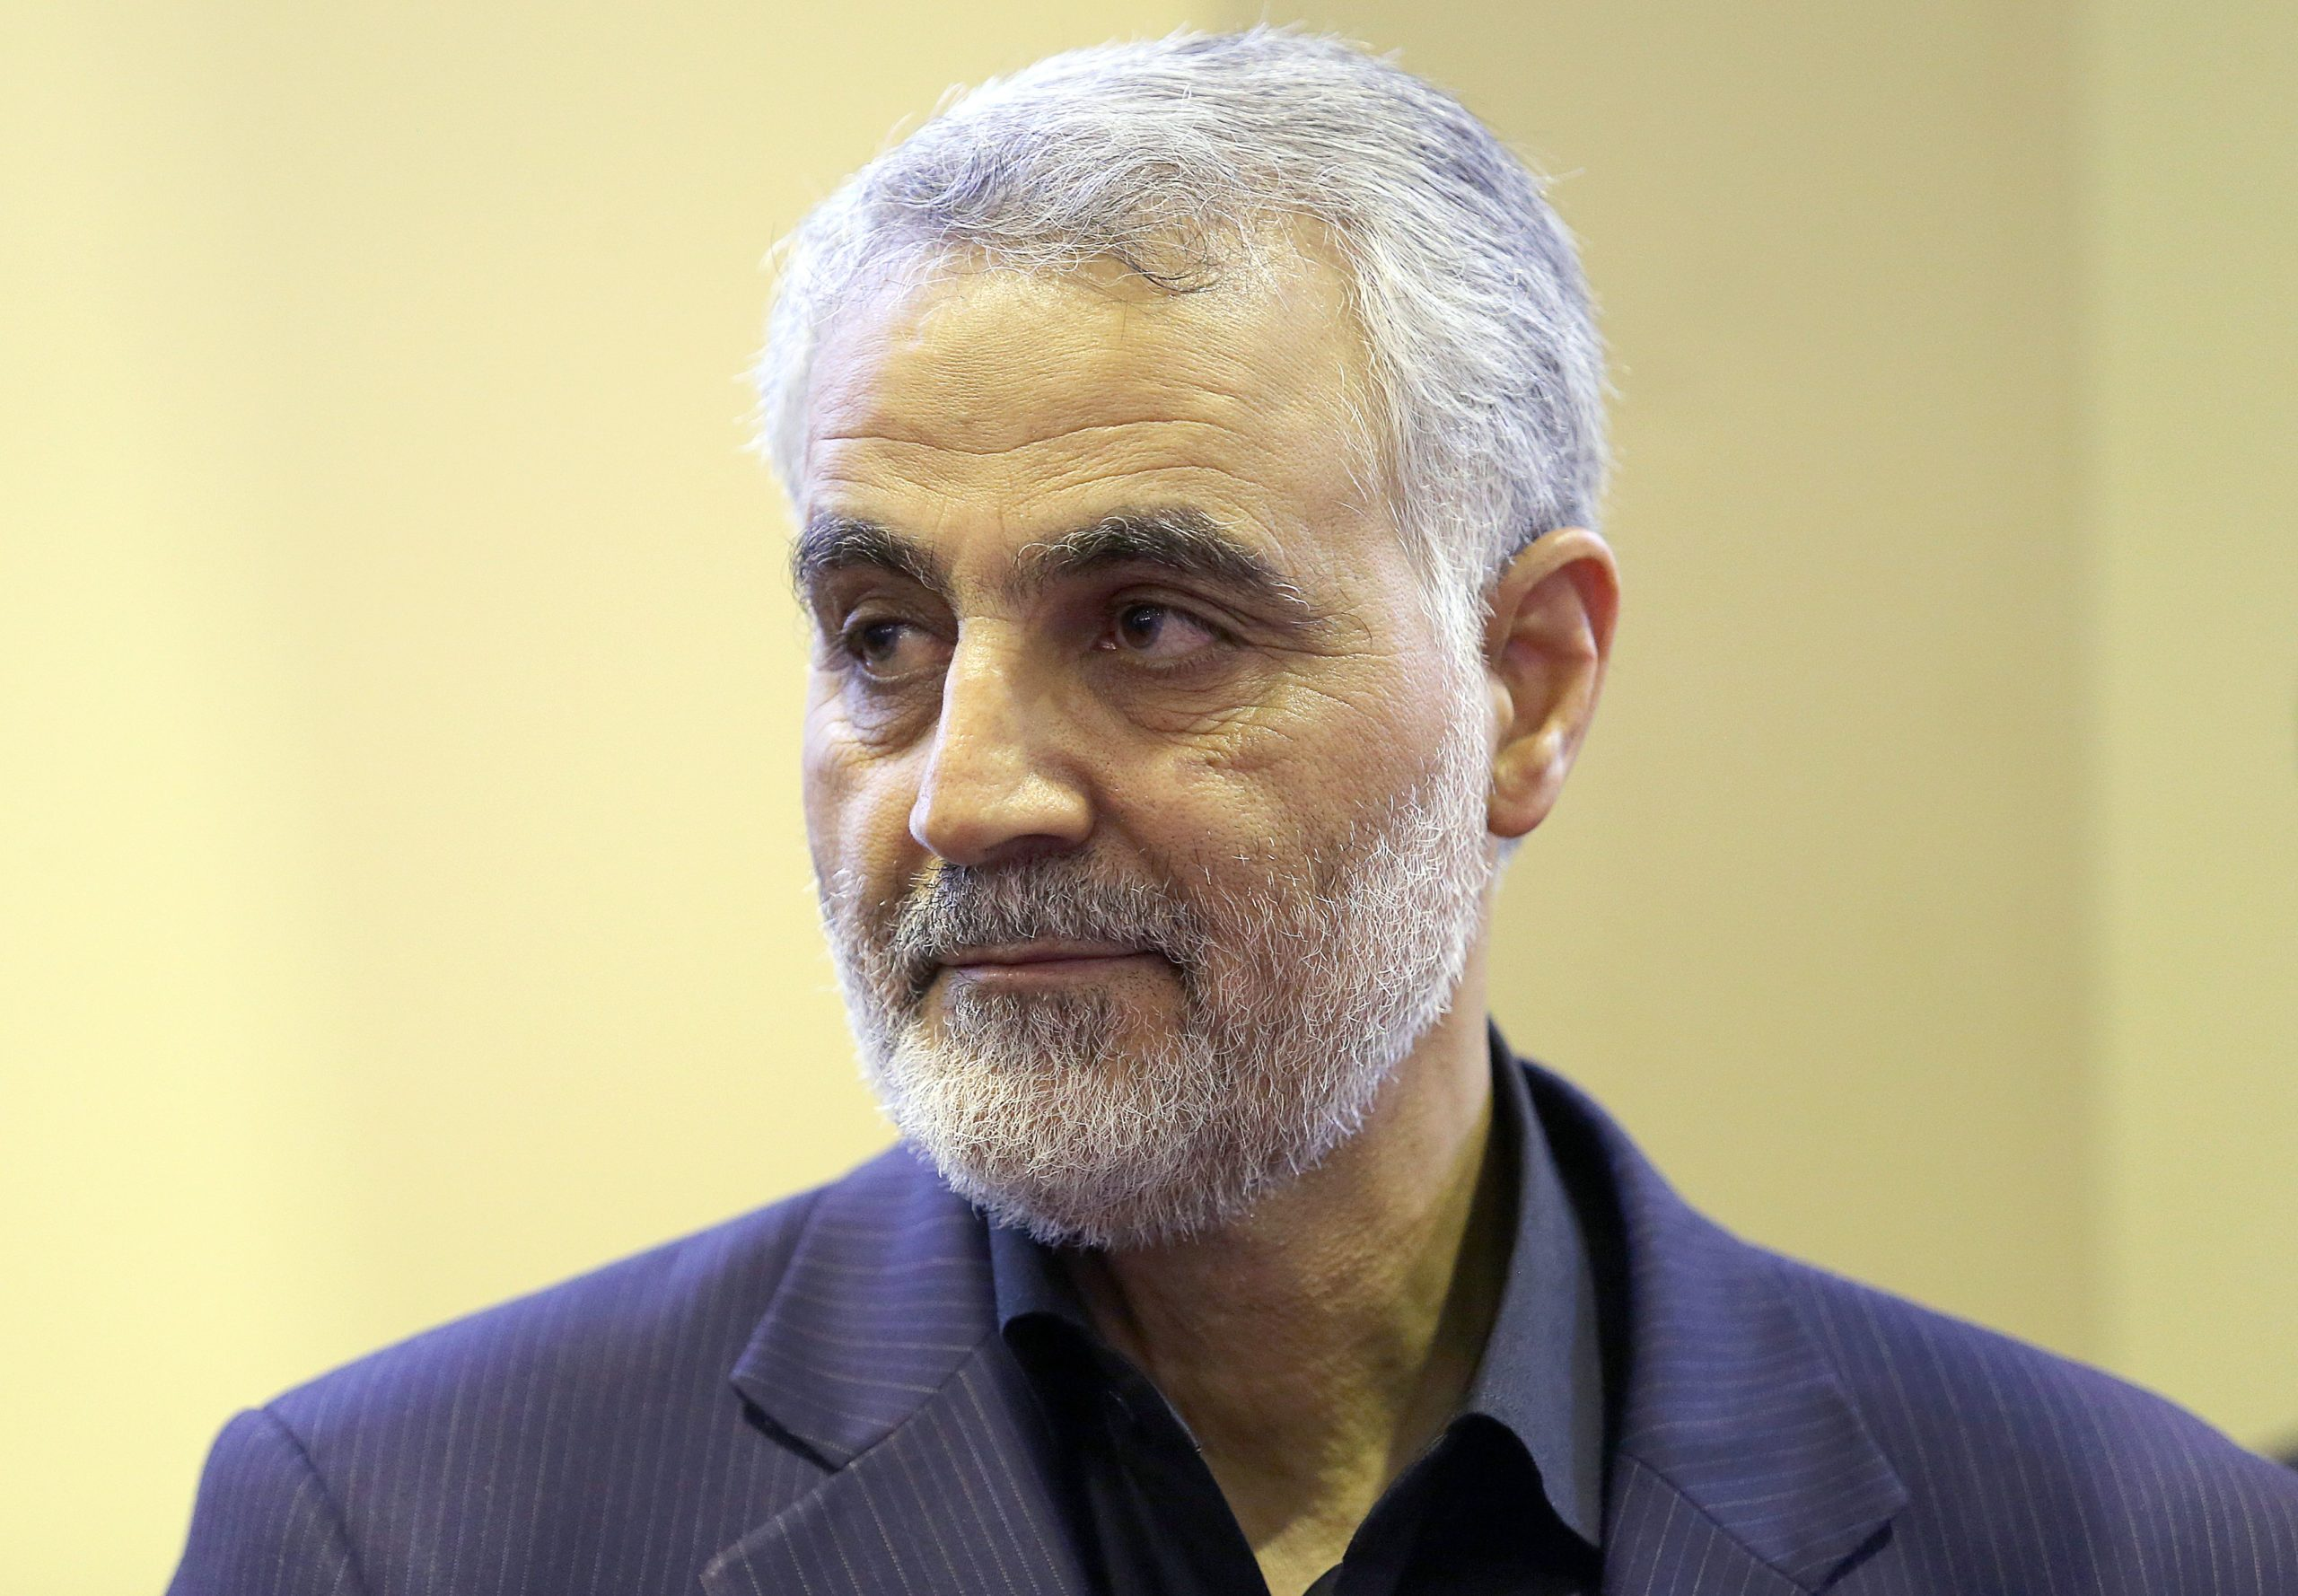 (FILES) In this picture taken on September 14, 2013, the commander of the Iranian Revolutionary Guard's Quds Force, Gen. Qassem Soleimani, is seen as people pay their condolences following the death of his mother in Tehran. (MEHDI GHASEMI/ISNA/AFP via Getty Images)